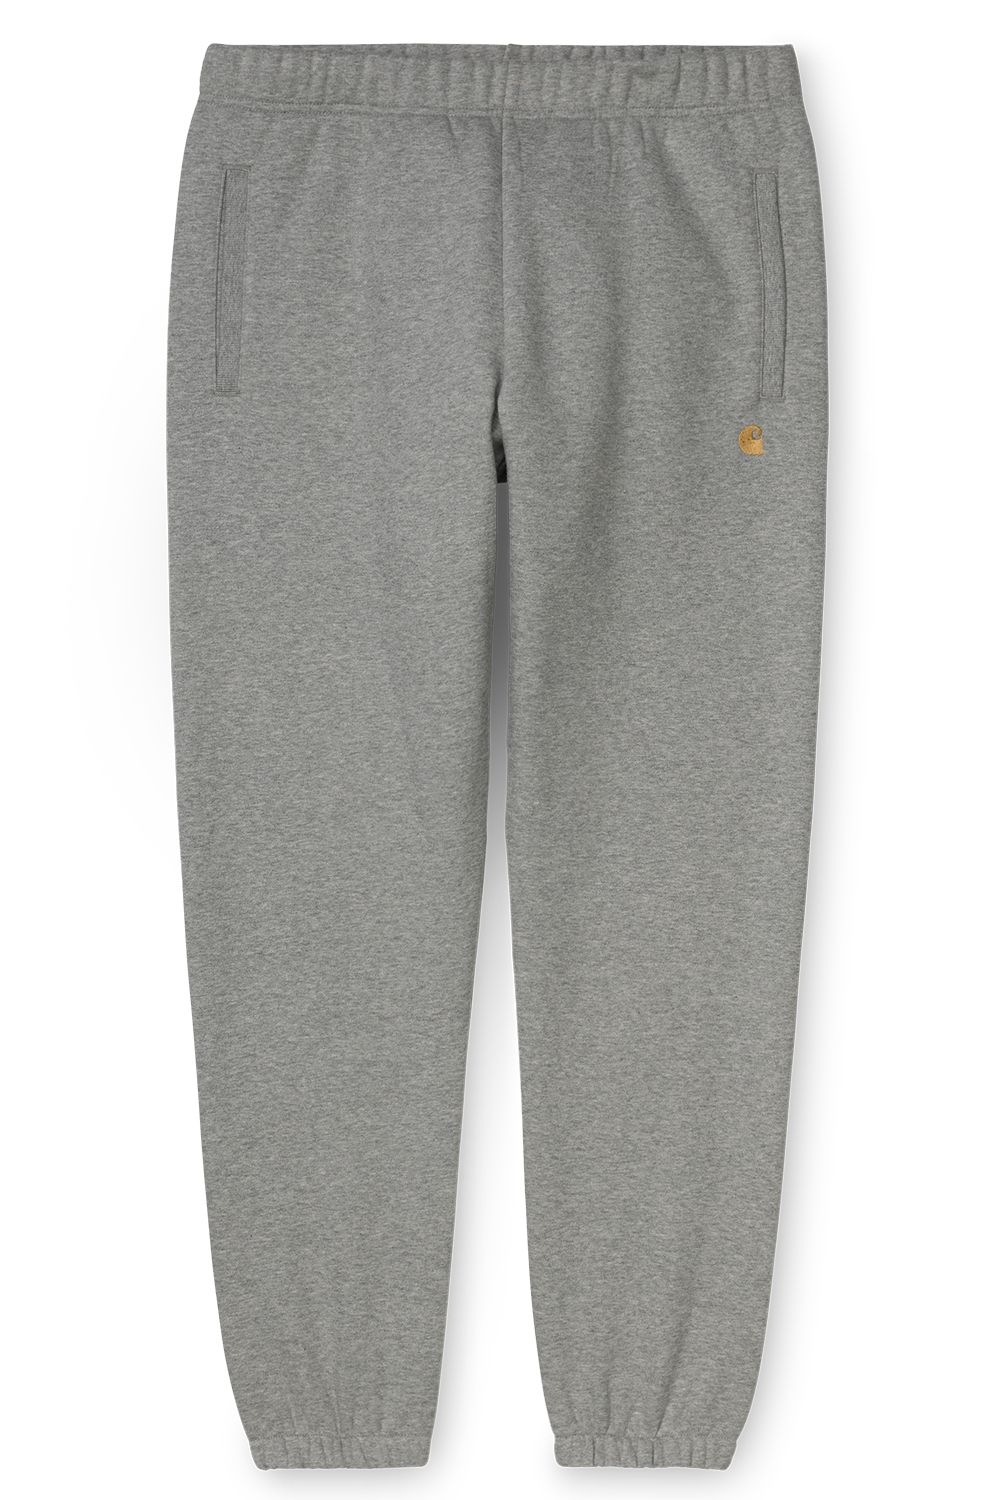 Carhartt WIP Pants CHASE SWEAT PANT Grey Heather/Gold